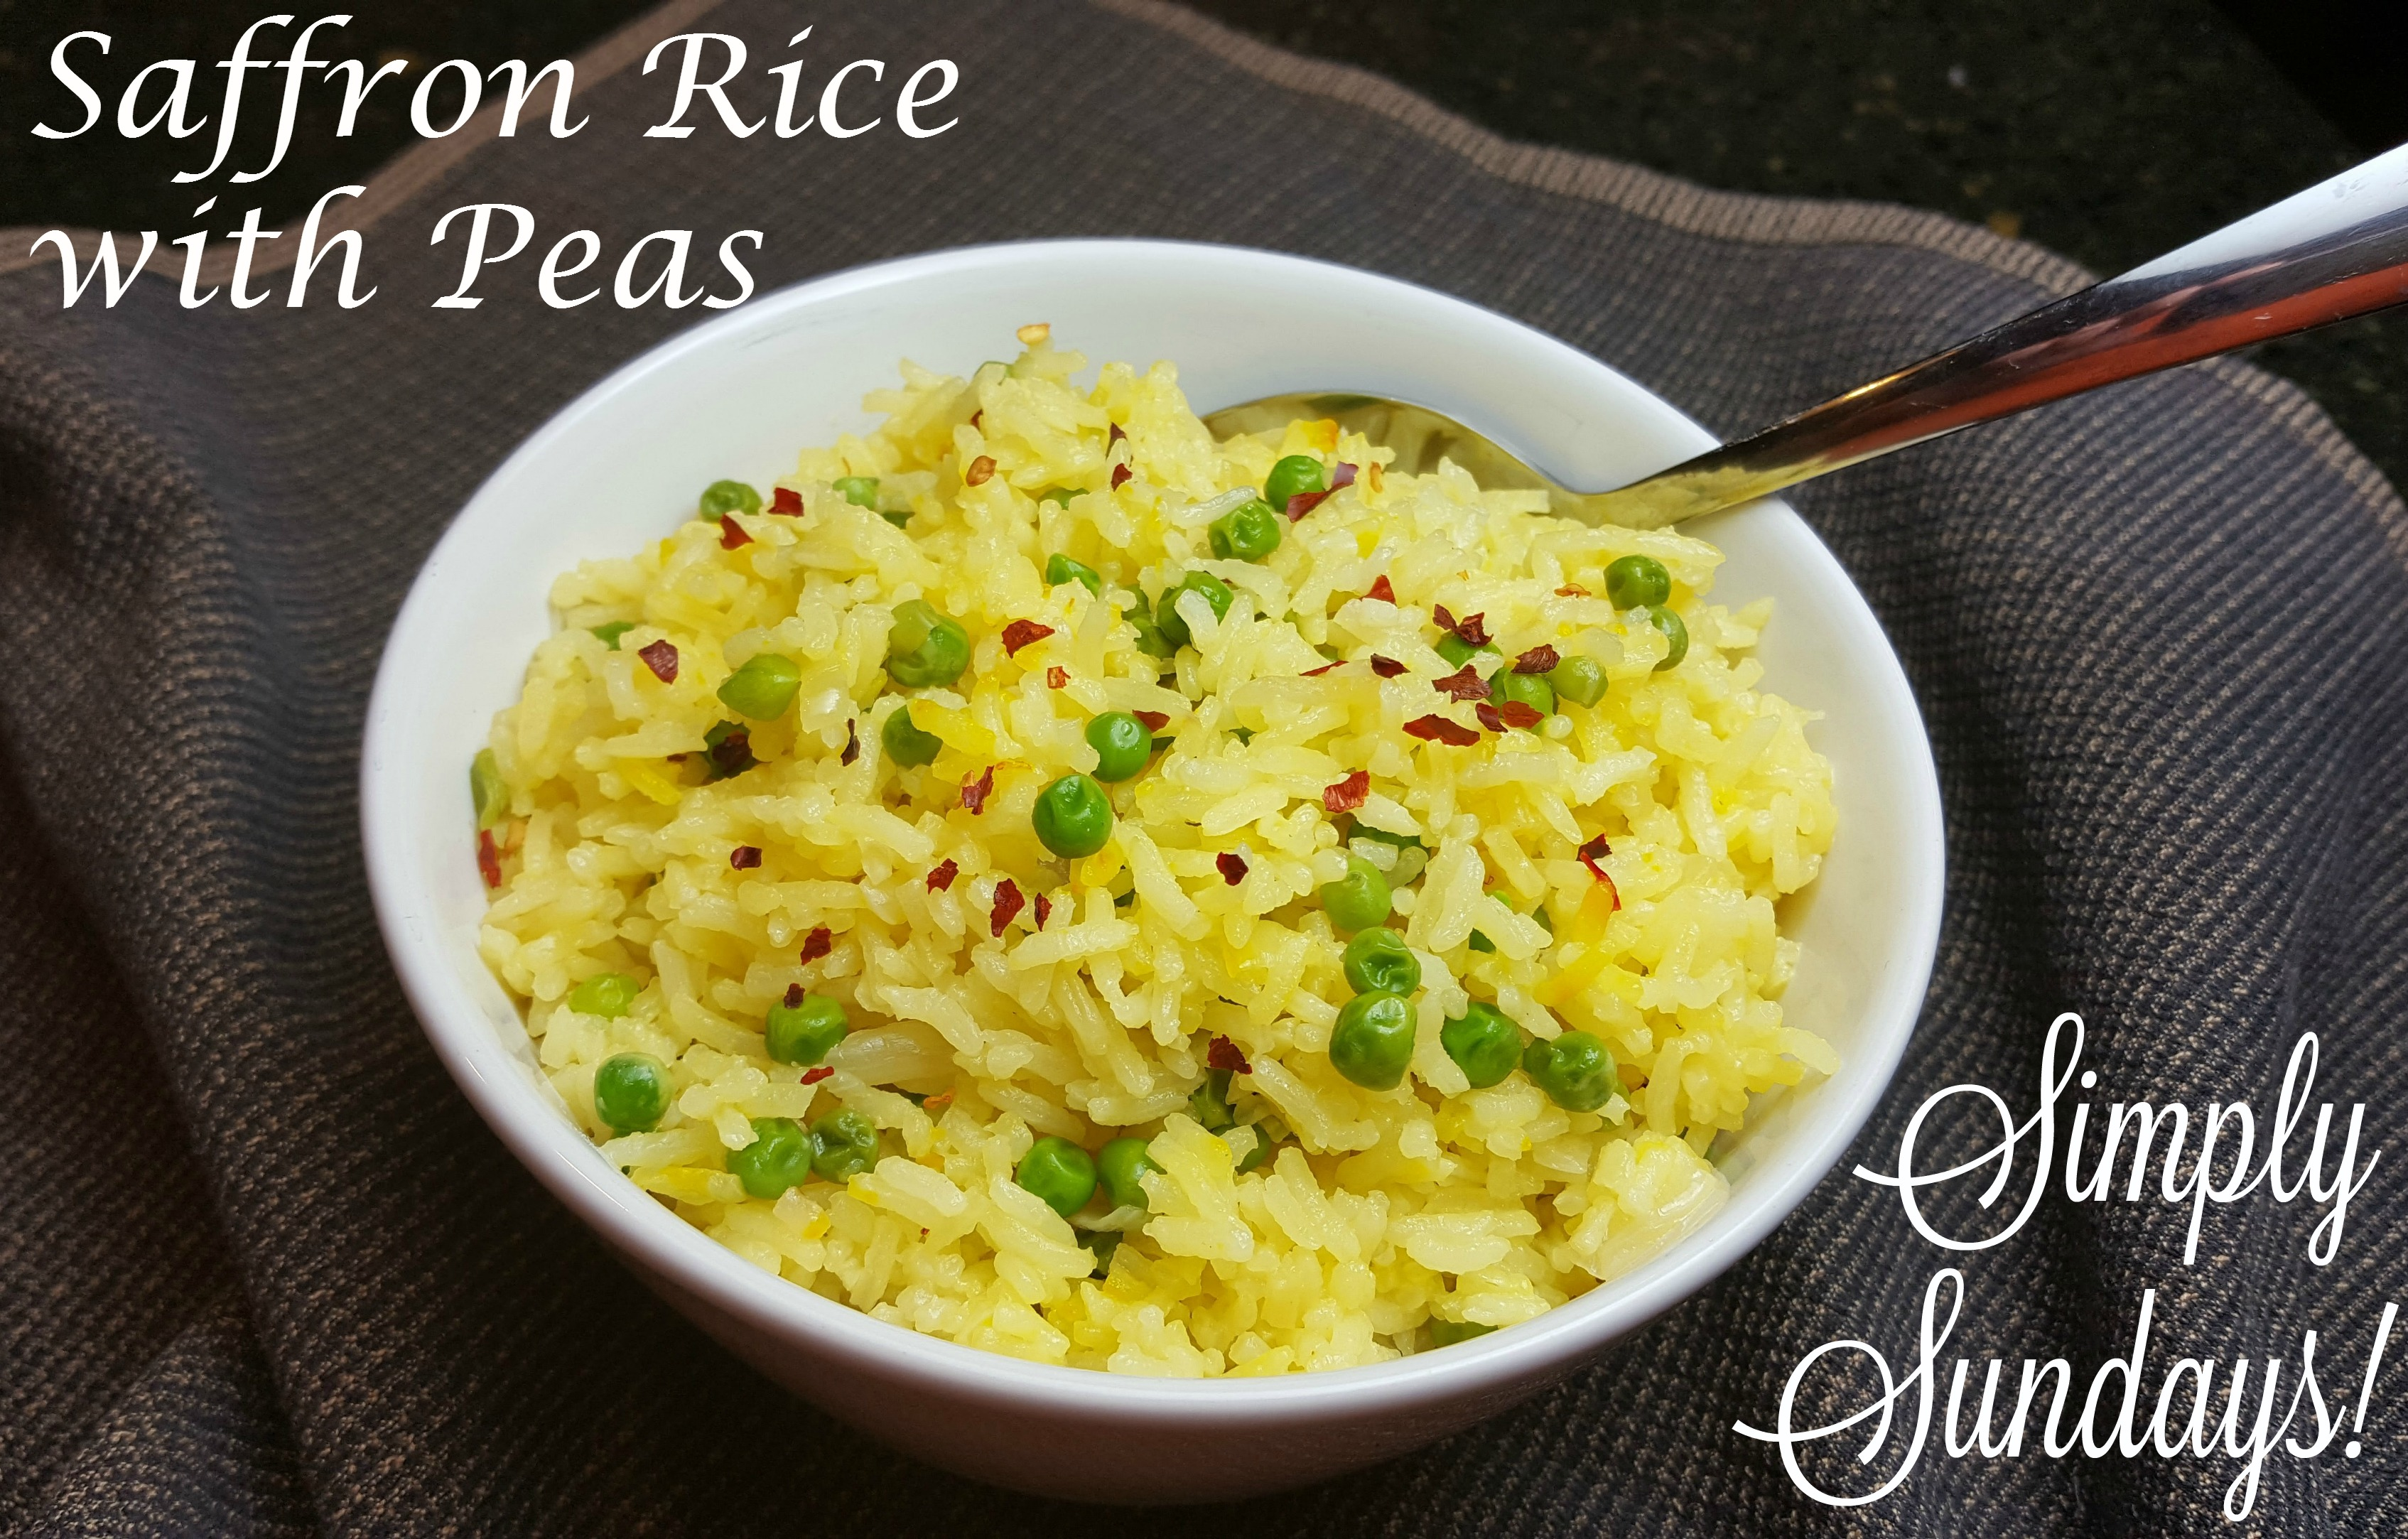 Saffron Rice With Peas Simply Sundays